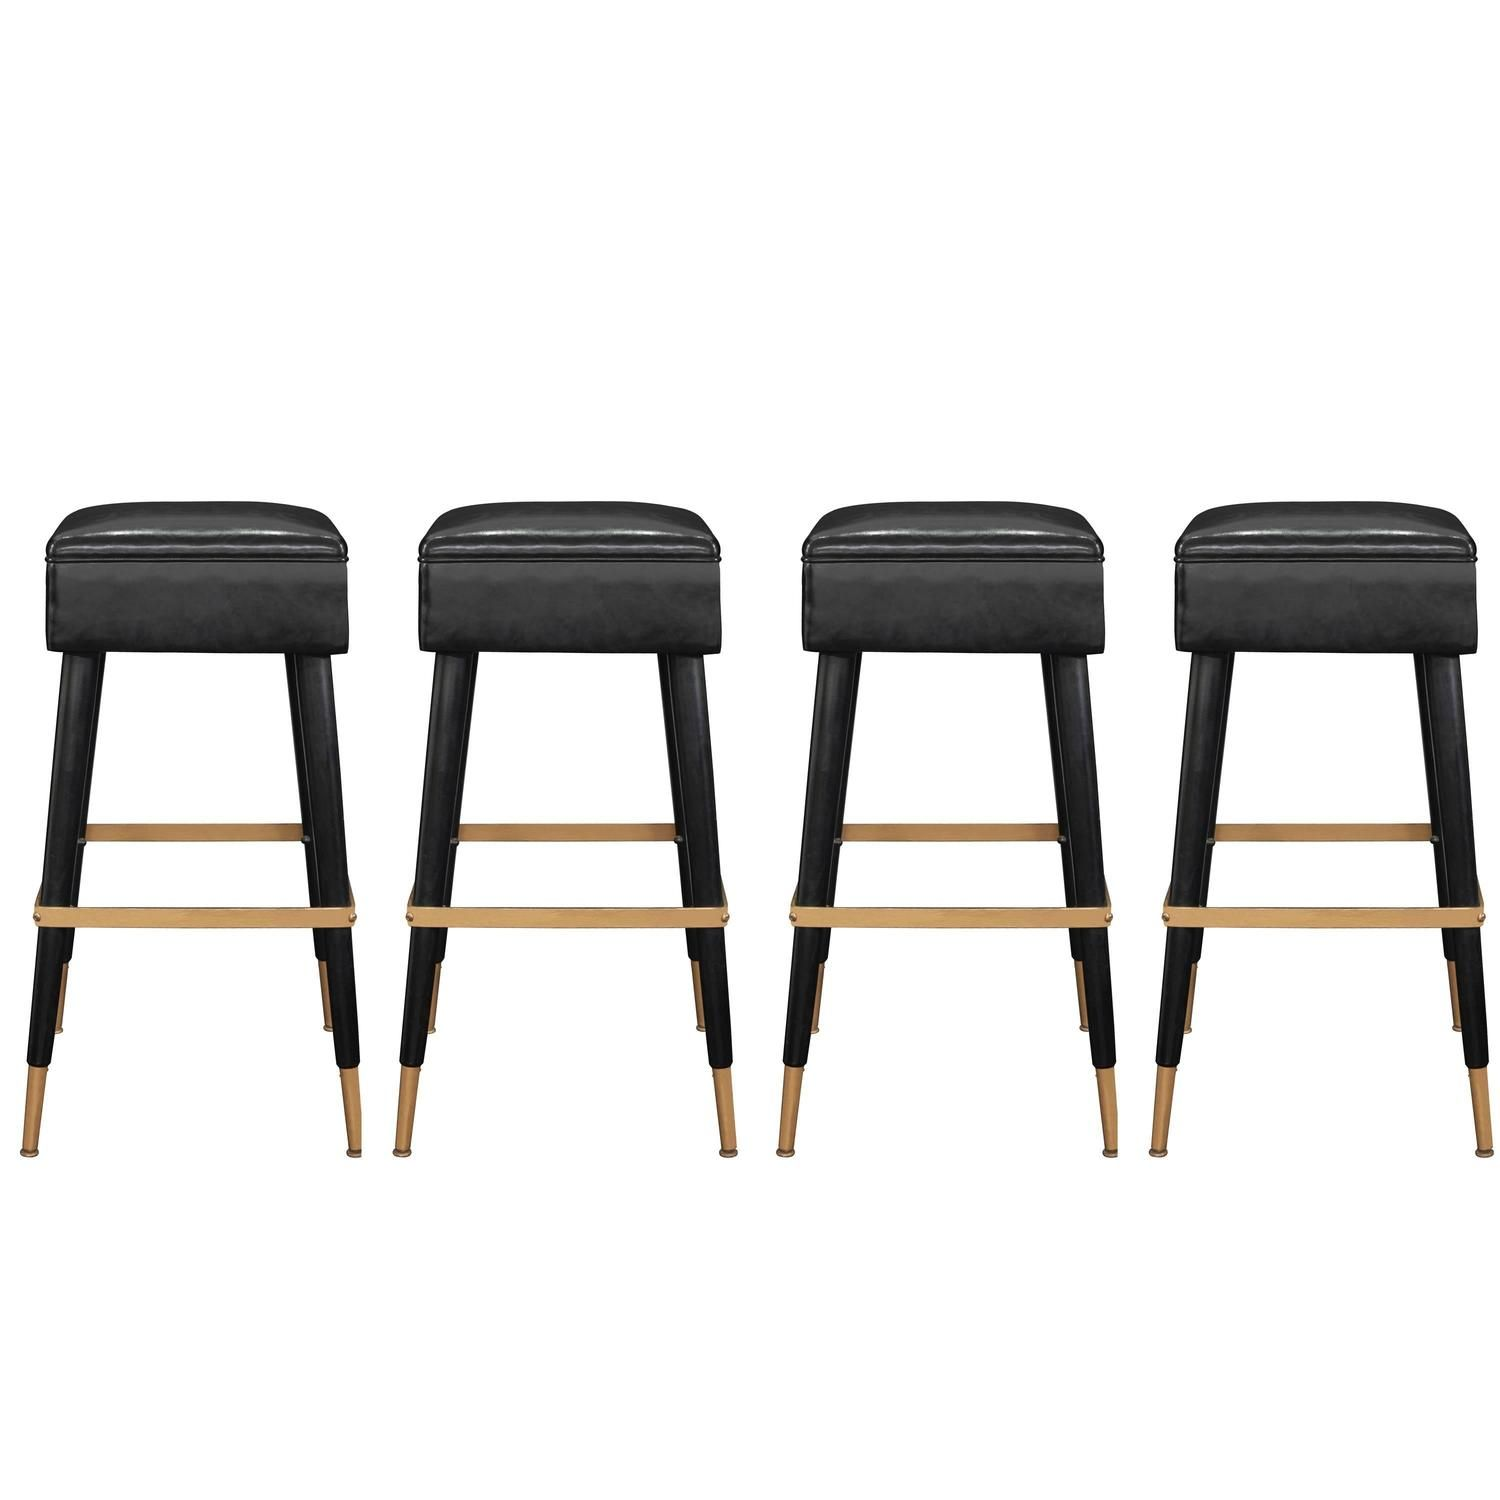 Set Of Four Chic Bar Stools With Brass Sabots And Footrests From A Unique Collection Of Antique And Moder Bar Stools Mid Century Bar Stools Modern Bar Stools